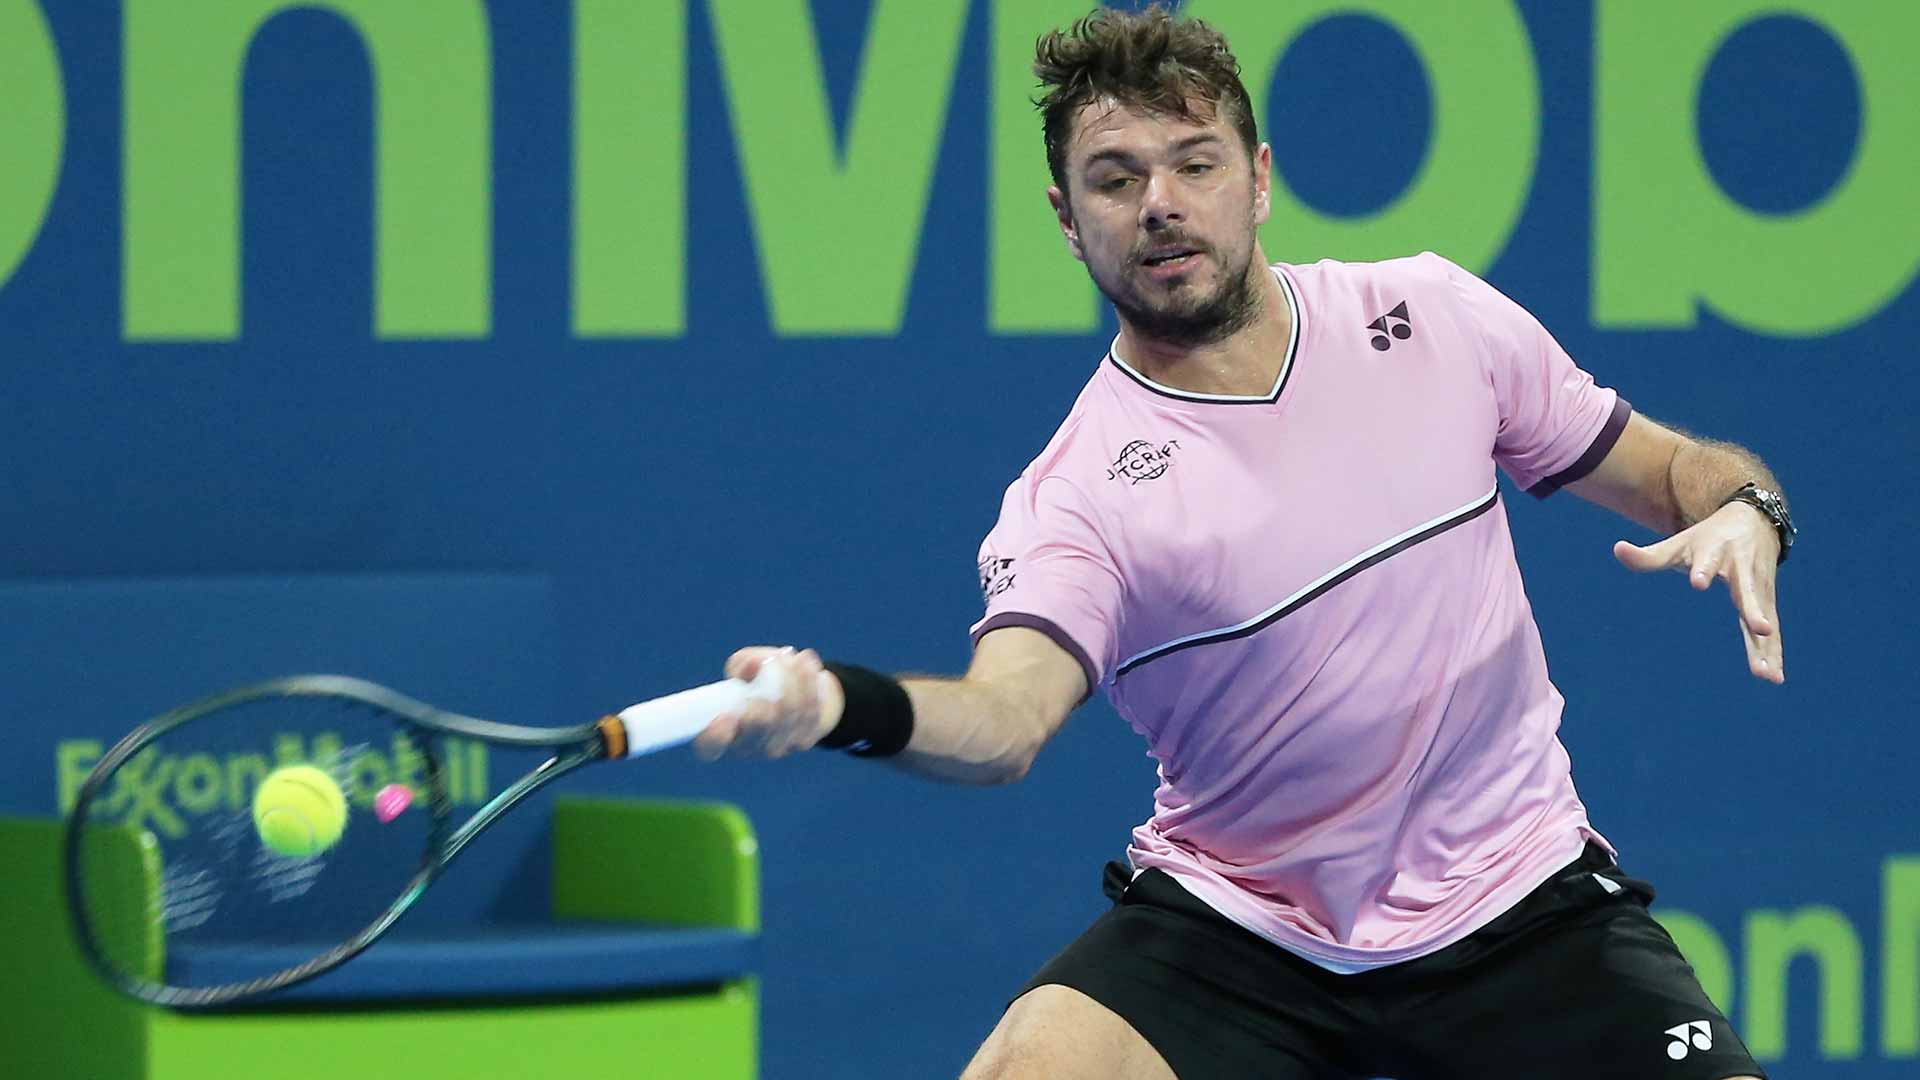 In his first singles match of the 2020 ATP Tour season, Stan Wawrinka defeats Jeremy Chardy at the Qatar ExxonMobil Open in Doha.